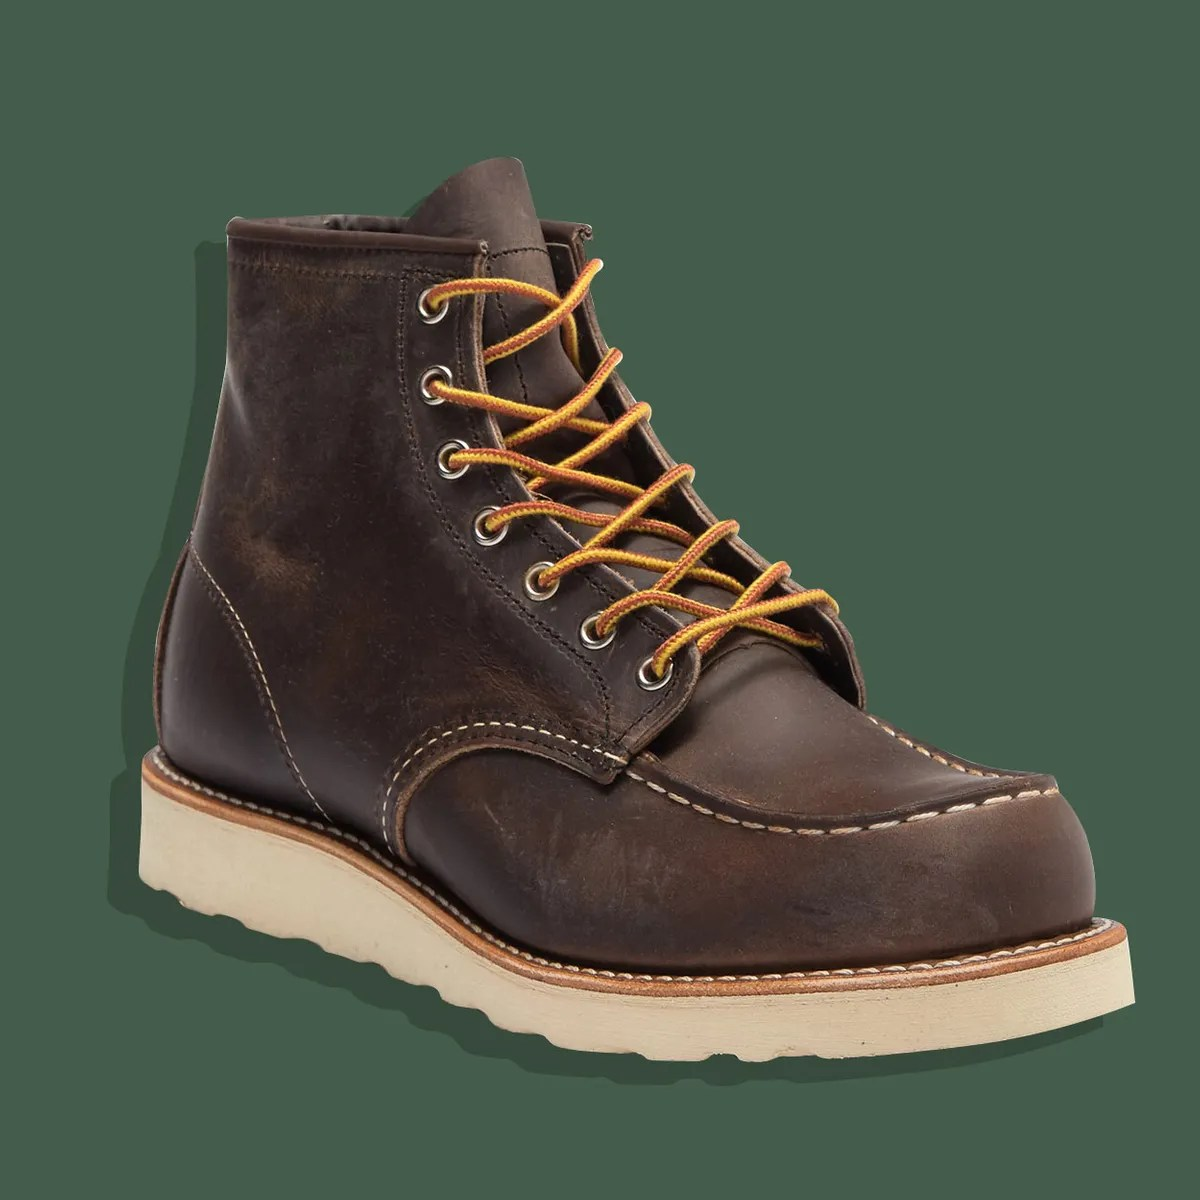 red wing 6 moc toe boot